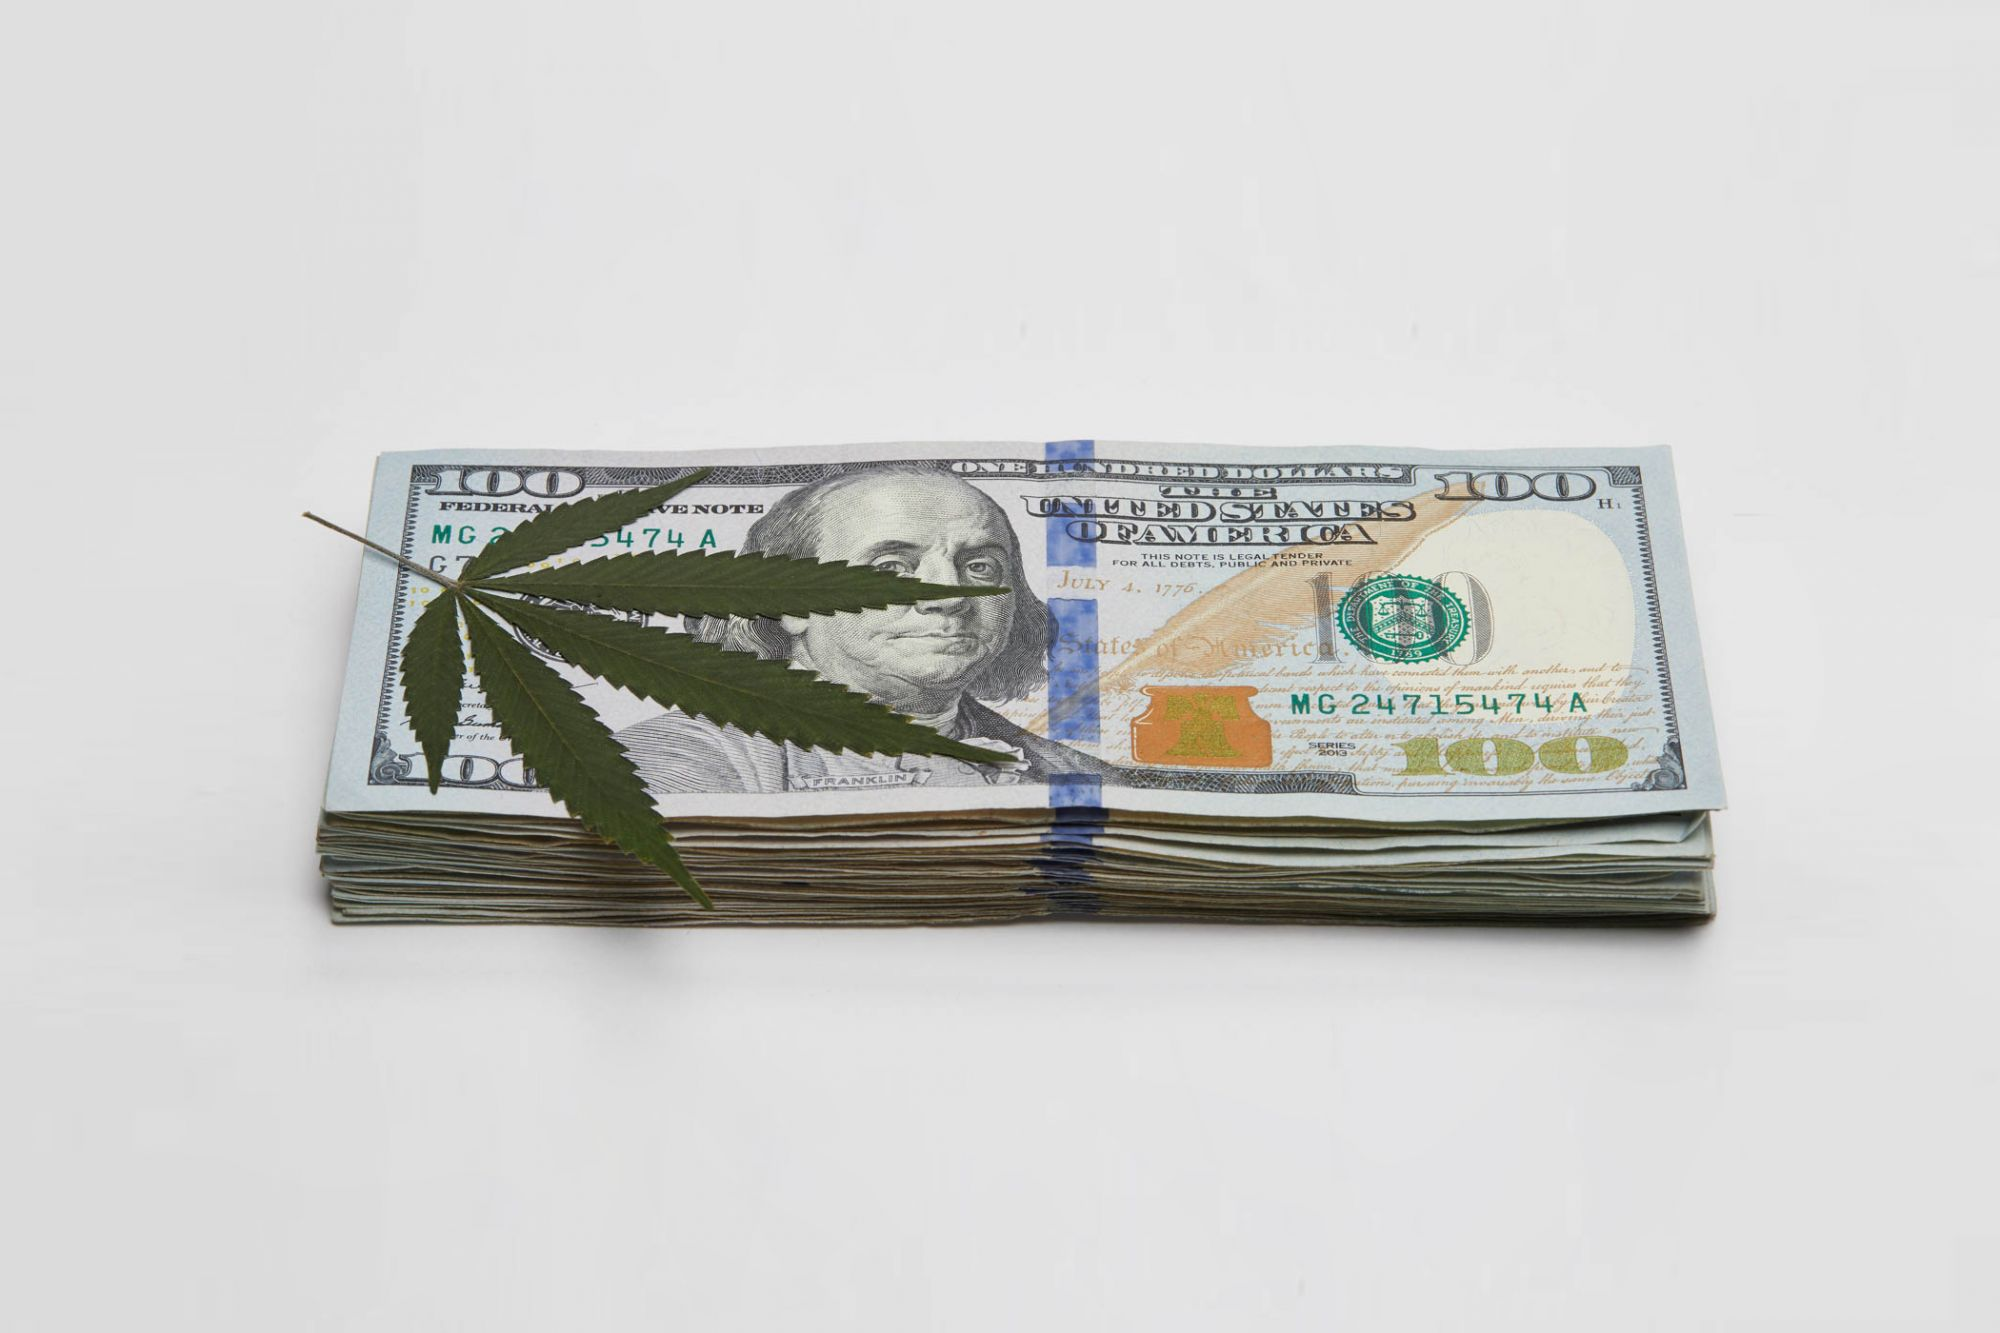 How Much Is The Price Of An Eighth Where You Live?